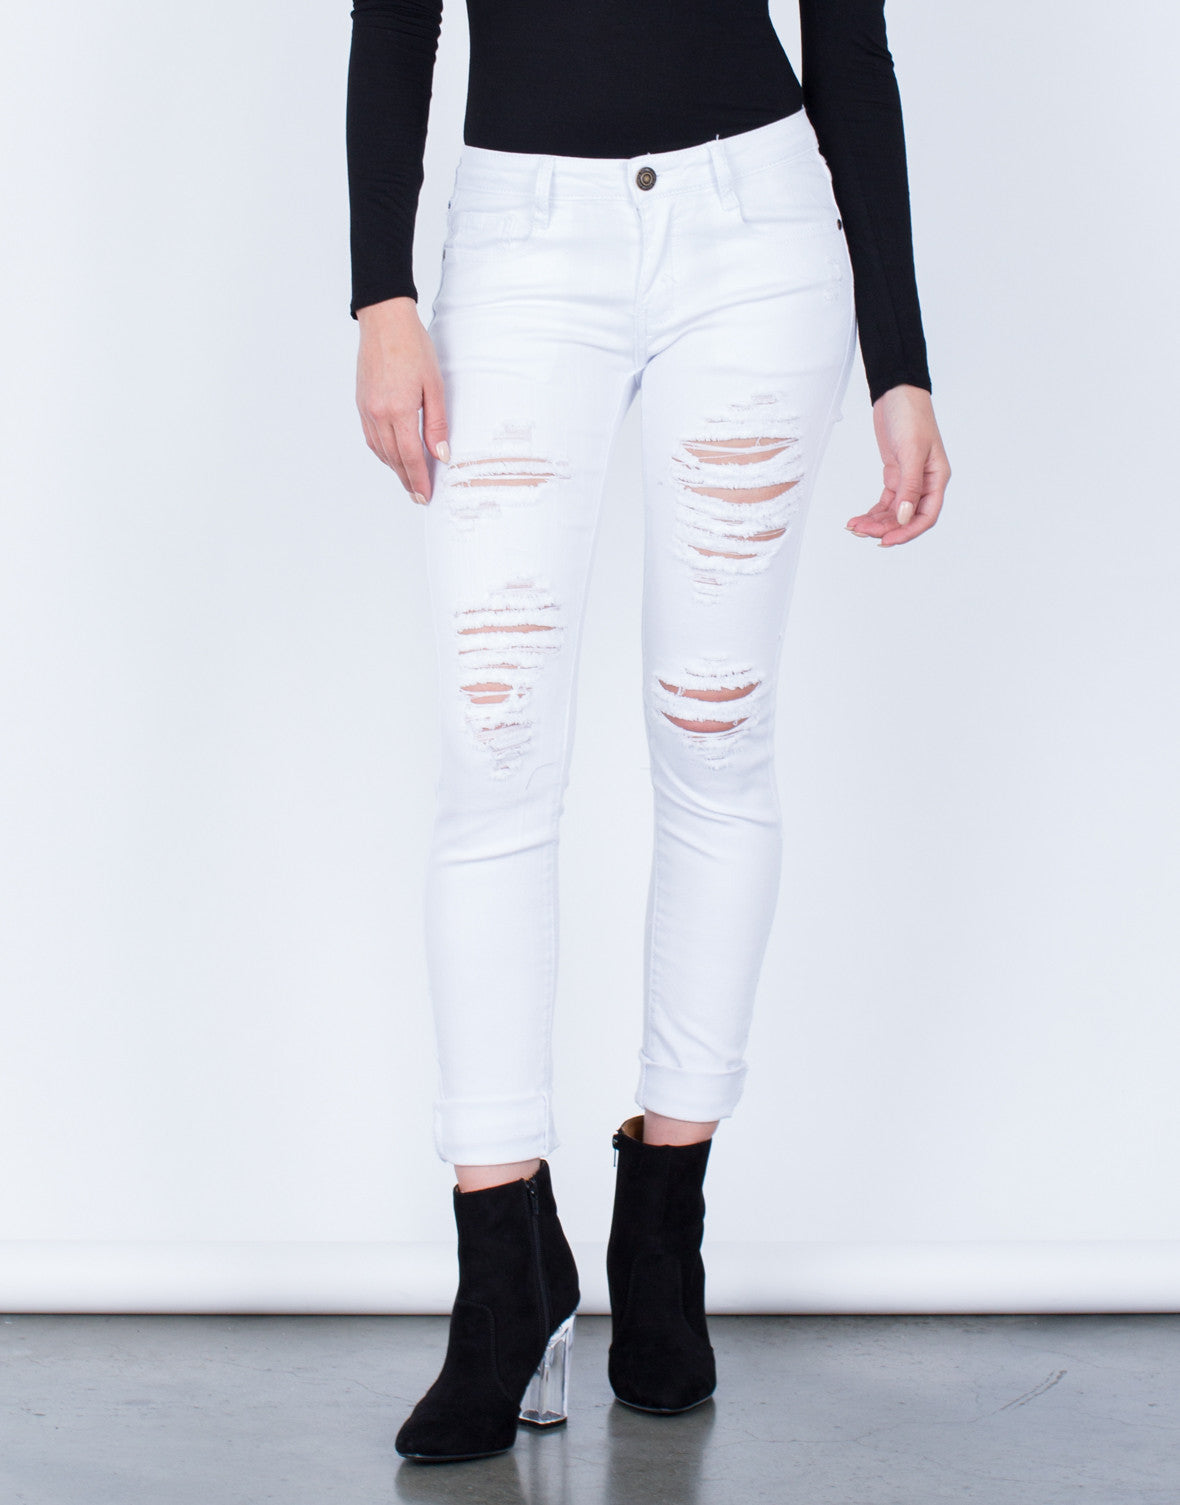 ... Front View of Destroyed White Skinny Jeans ... - Destroyed White Skinny Jeans - White Skinny Jeans - White Ripped